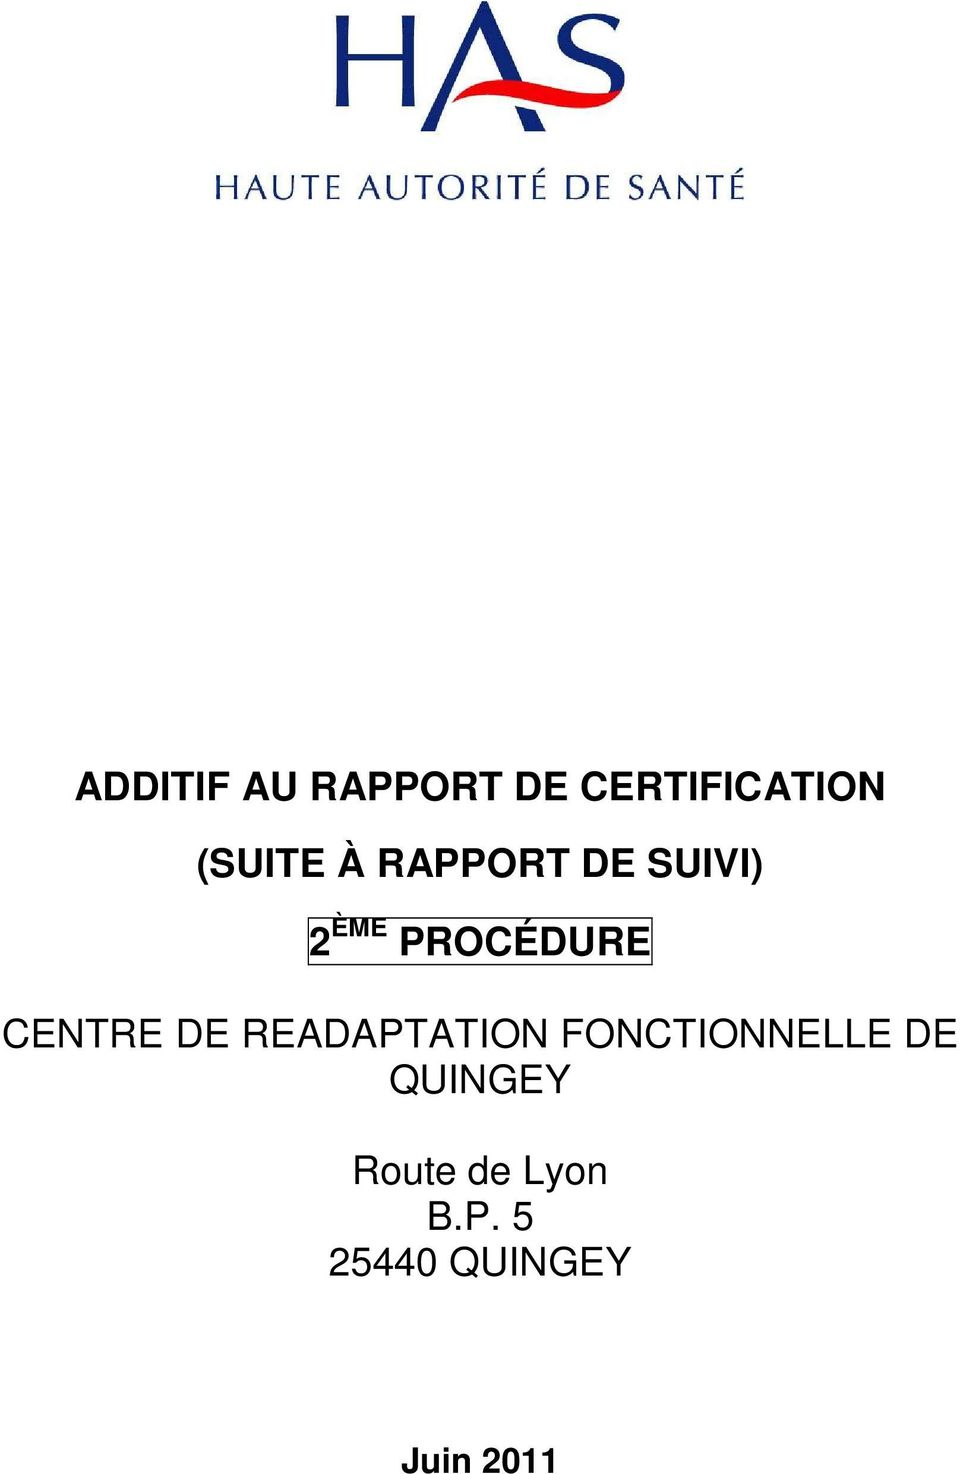 DE READAPTATION FONCTIONNELLE DE QUINGEY